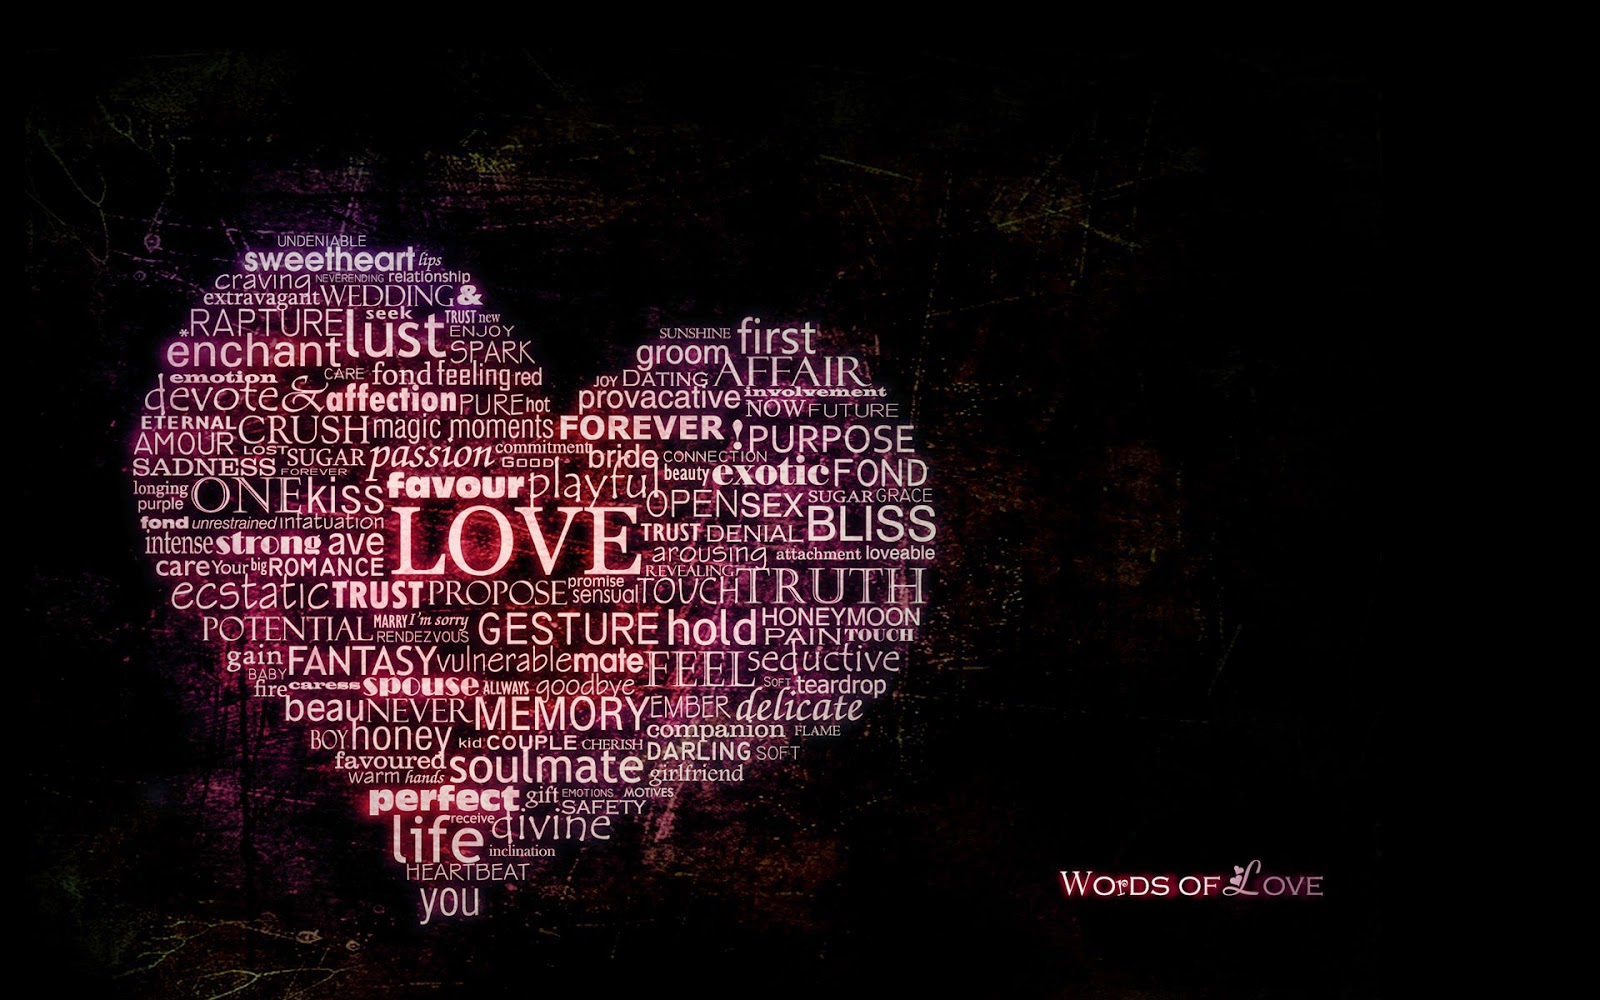 love-quotes-hdlovewallpaper-widscreen